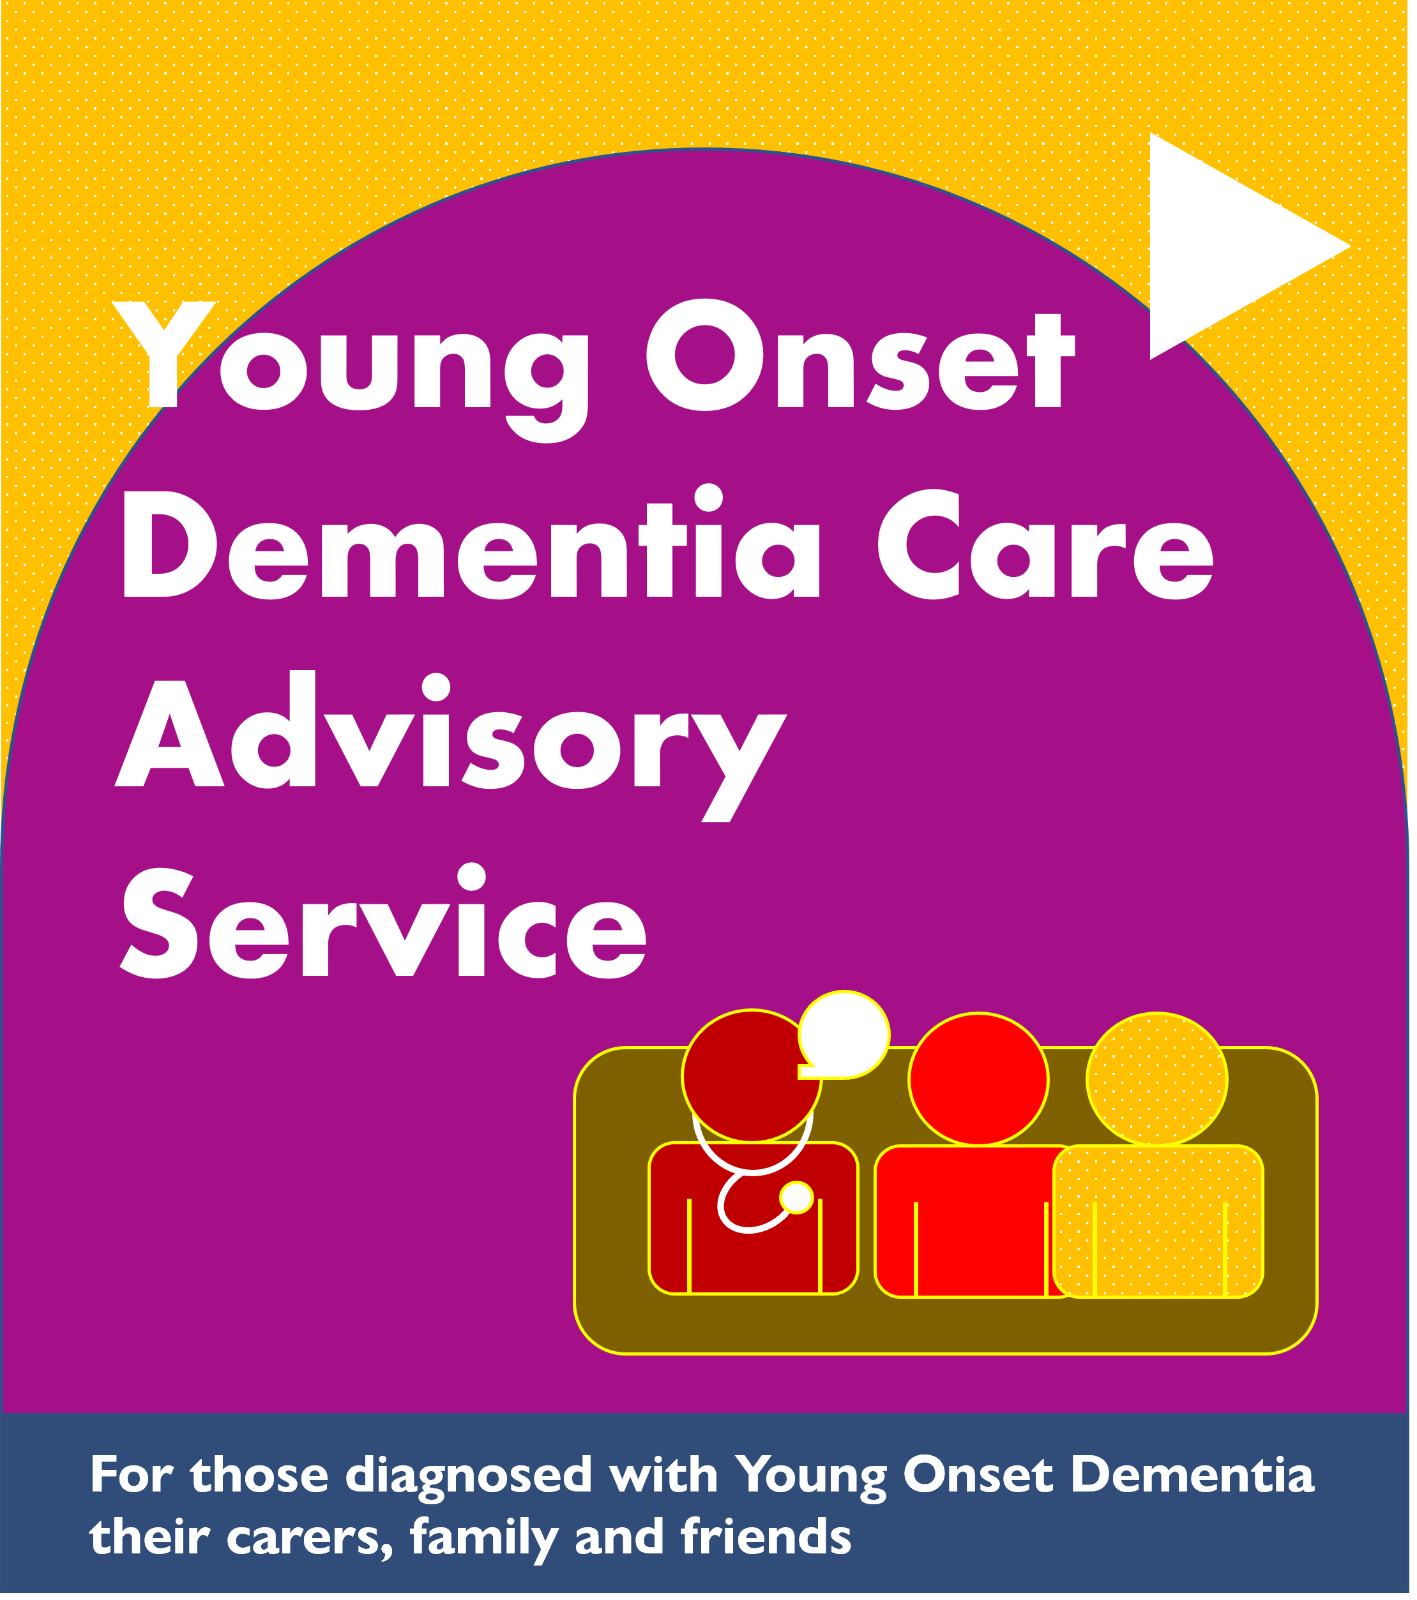 Free: Young Onset Dementia Care Advisor Service